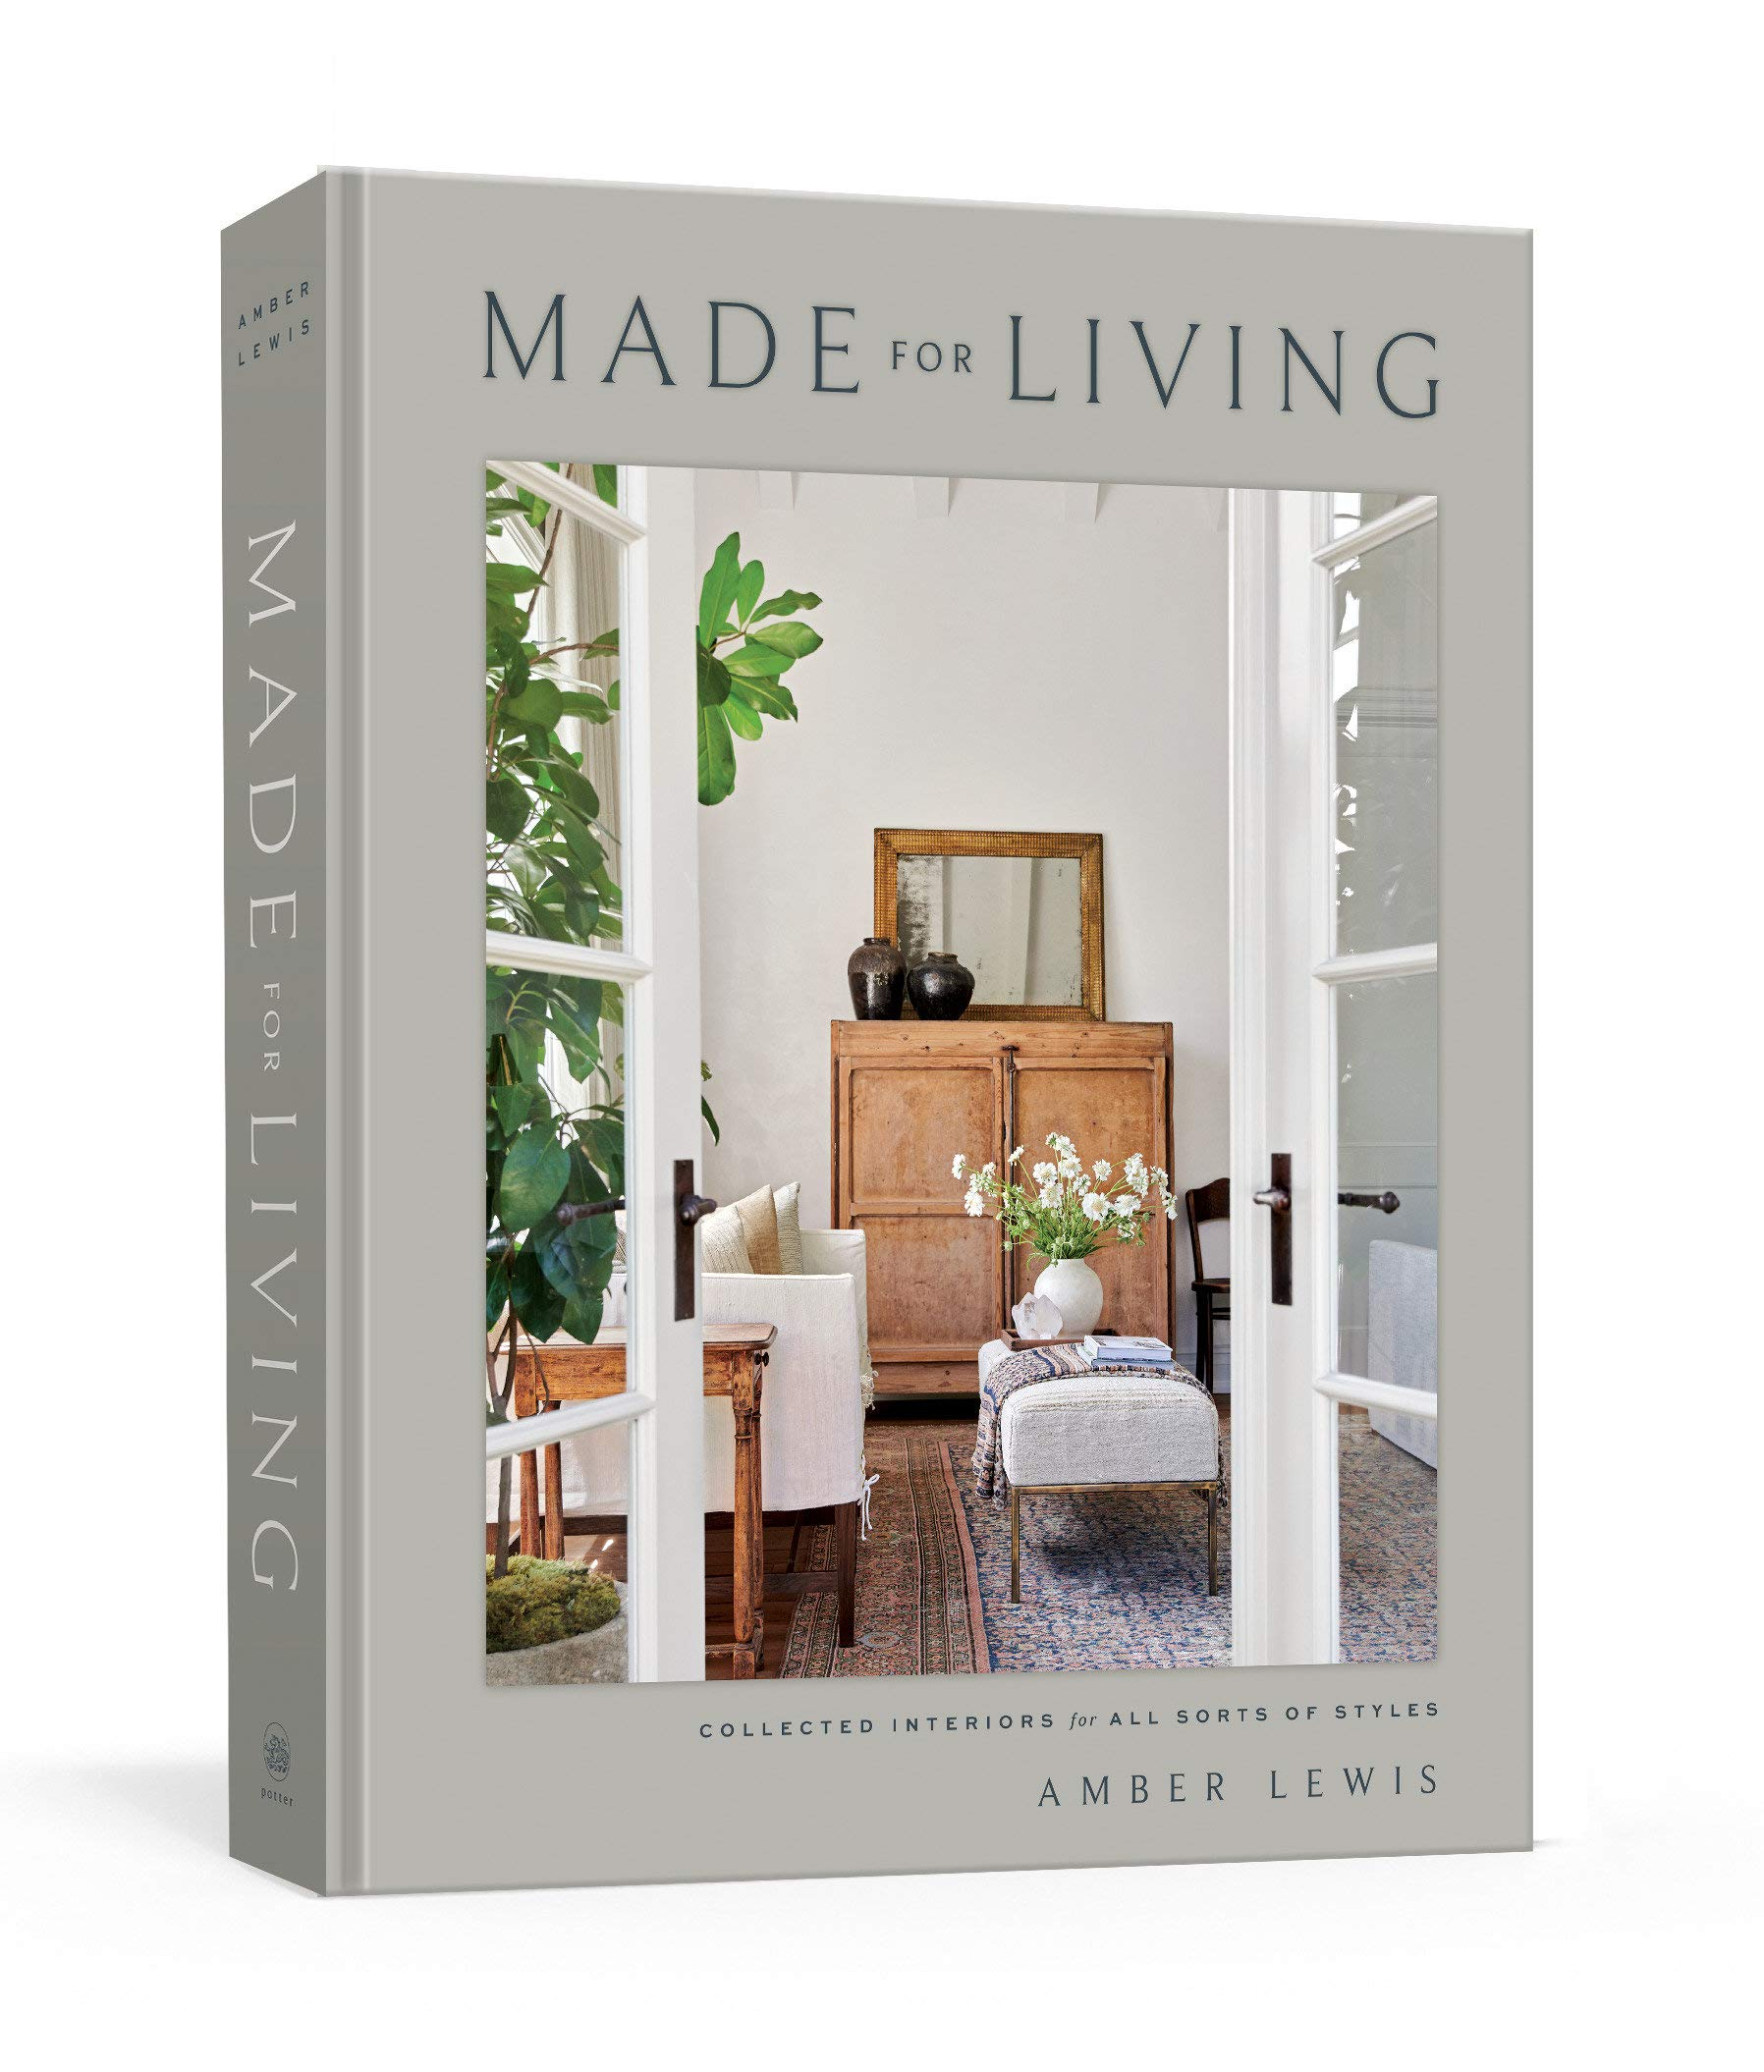 made for living interior book by amber lewis